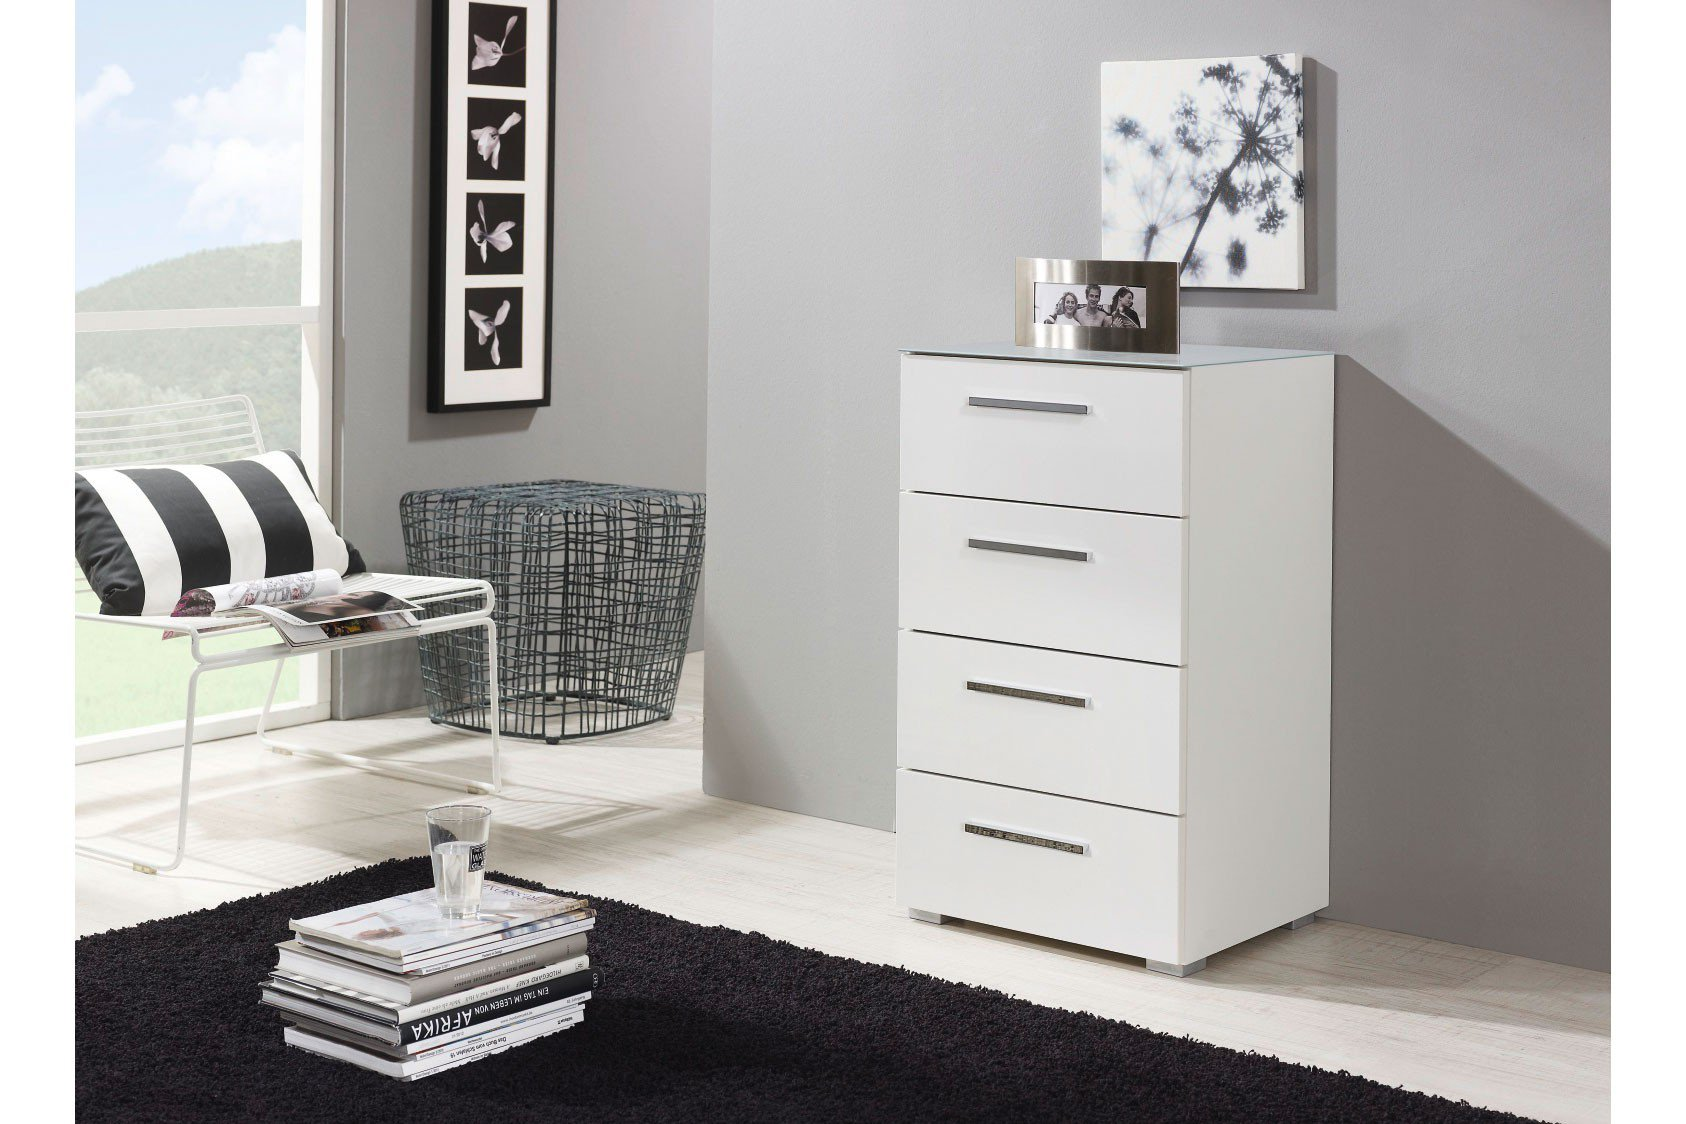 rauch solo schubkastenkommode wei glas m bel letz ihr online shop. Black Bedroom Furniture Sets. Home Design Ideas